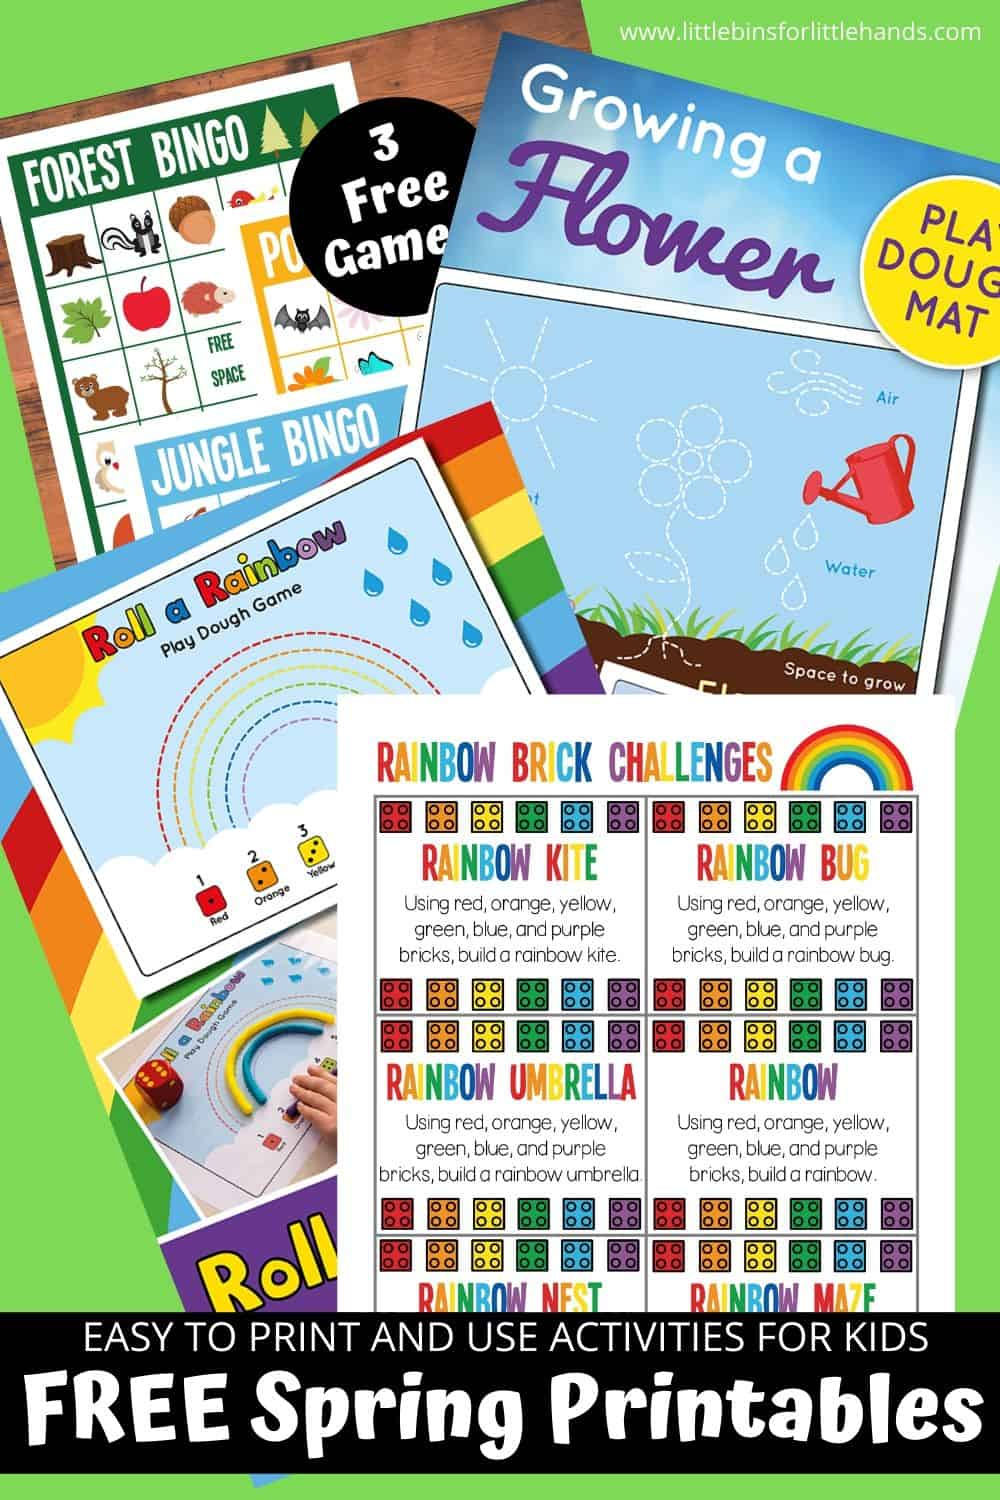 Free Spring Printable Activities for Kids including bingo, scavenger hunts, LEGO and more!